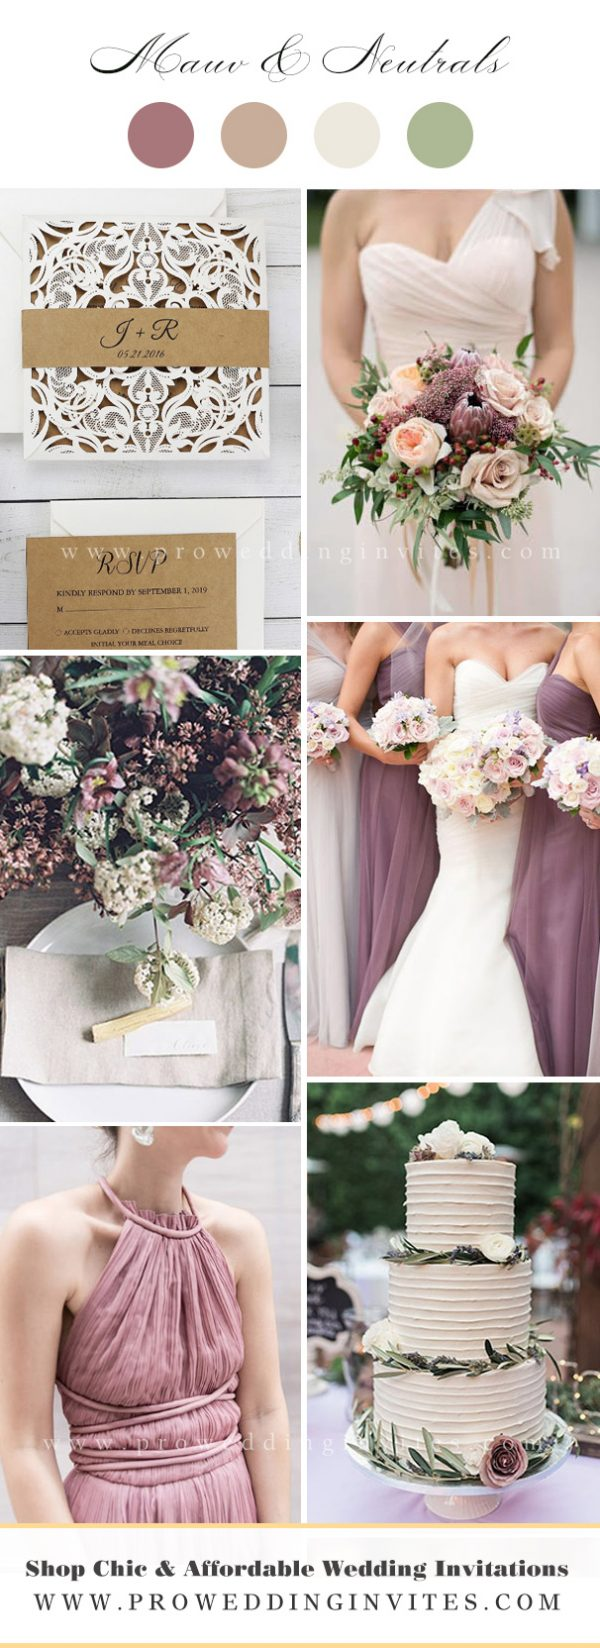 Light Mauve, tan and Neutrals Wedding Wedding Color Ideas with Matching Invitations